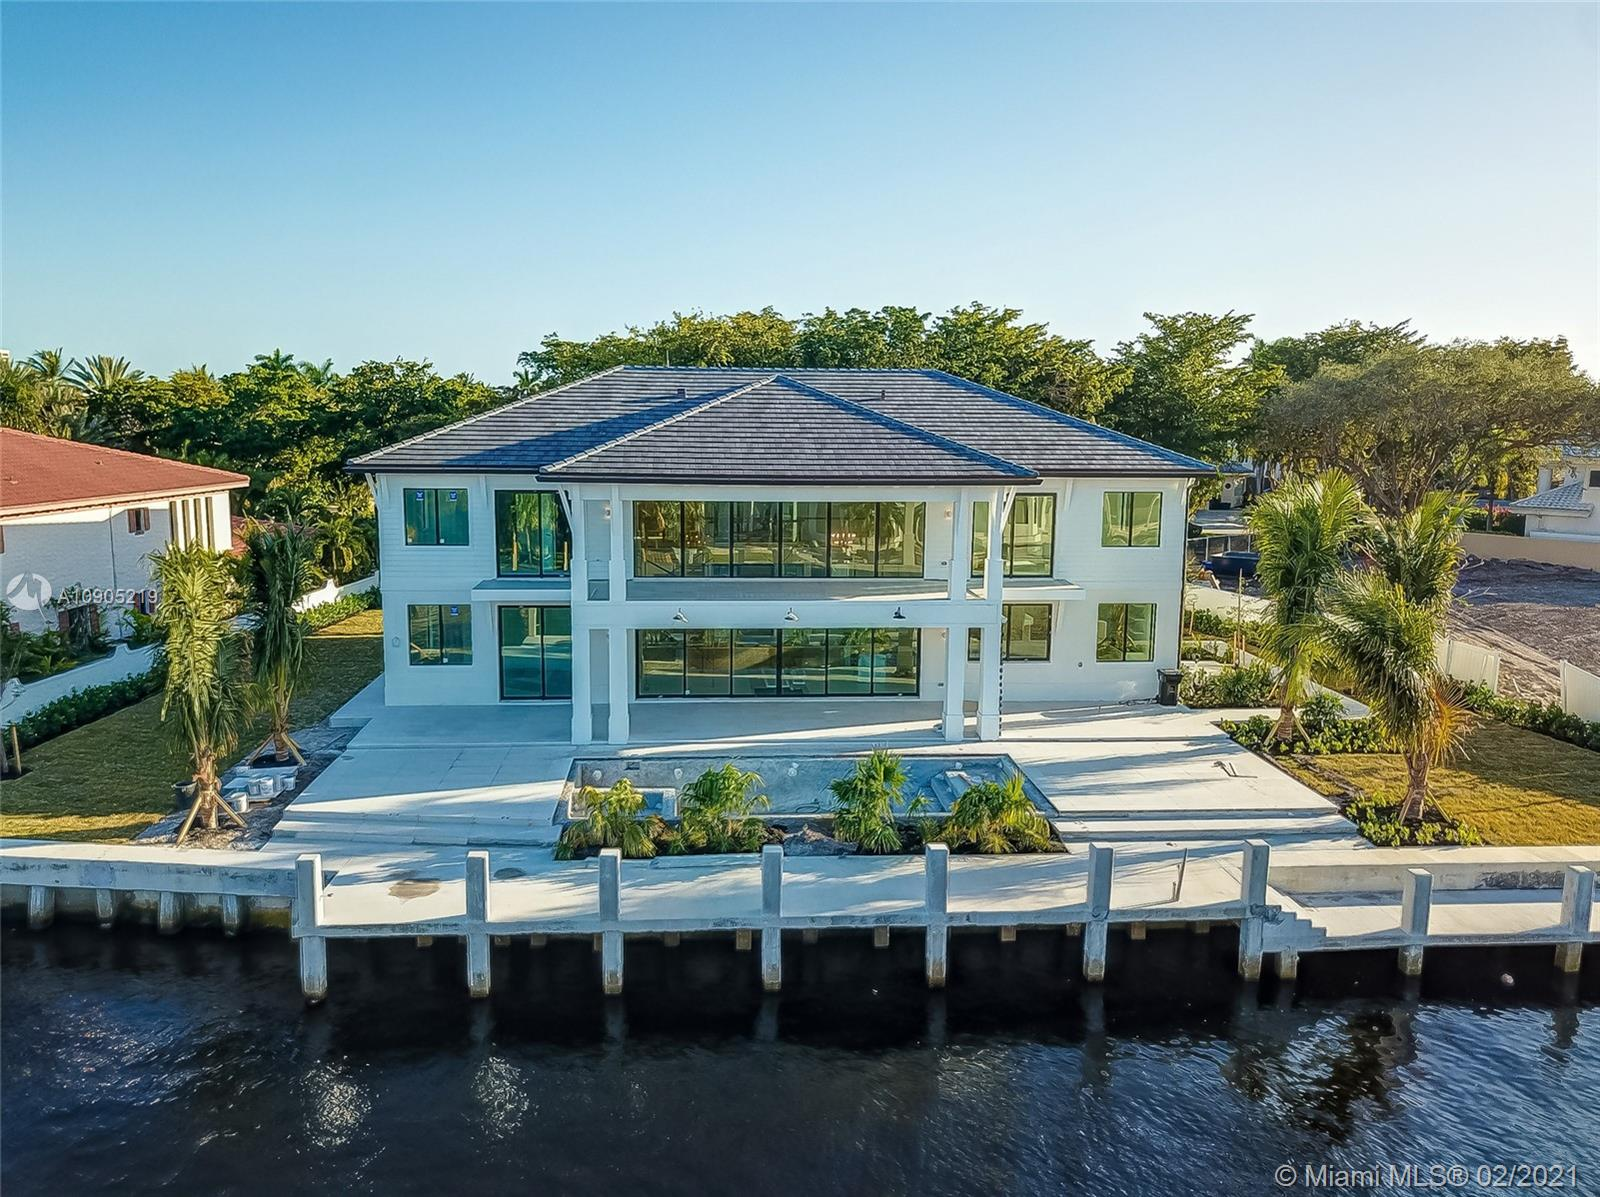 New construction home located within one of the only private, 24 hour guard gated community in Fort Lauderdale known as Bay Colony. This home sits on an oversized waterfront lot featuring 6 bedrooms plus flex room and 5.5 bathrooms. Custom chefs kitchen and lavish bathrooms by Mia Cucina. Open floor plan with 22ft ceilings perfect for entertainment and hosting friends and family. Boaters dream with no fixed bridges and easy access to open waterways. 110' dock, 10' wide, and 151' of Seawall. Completion estimated Q4 2020.